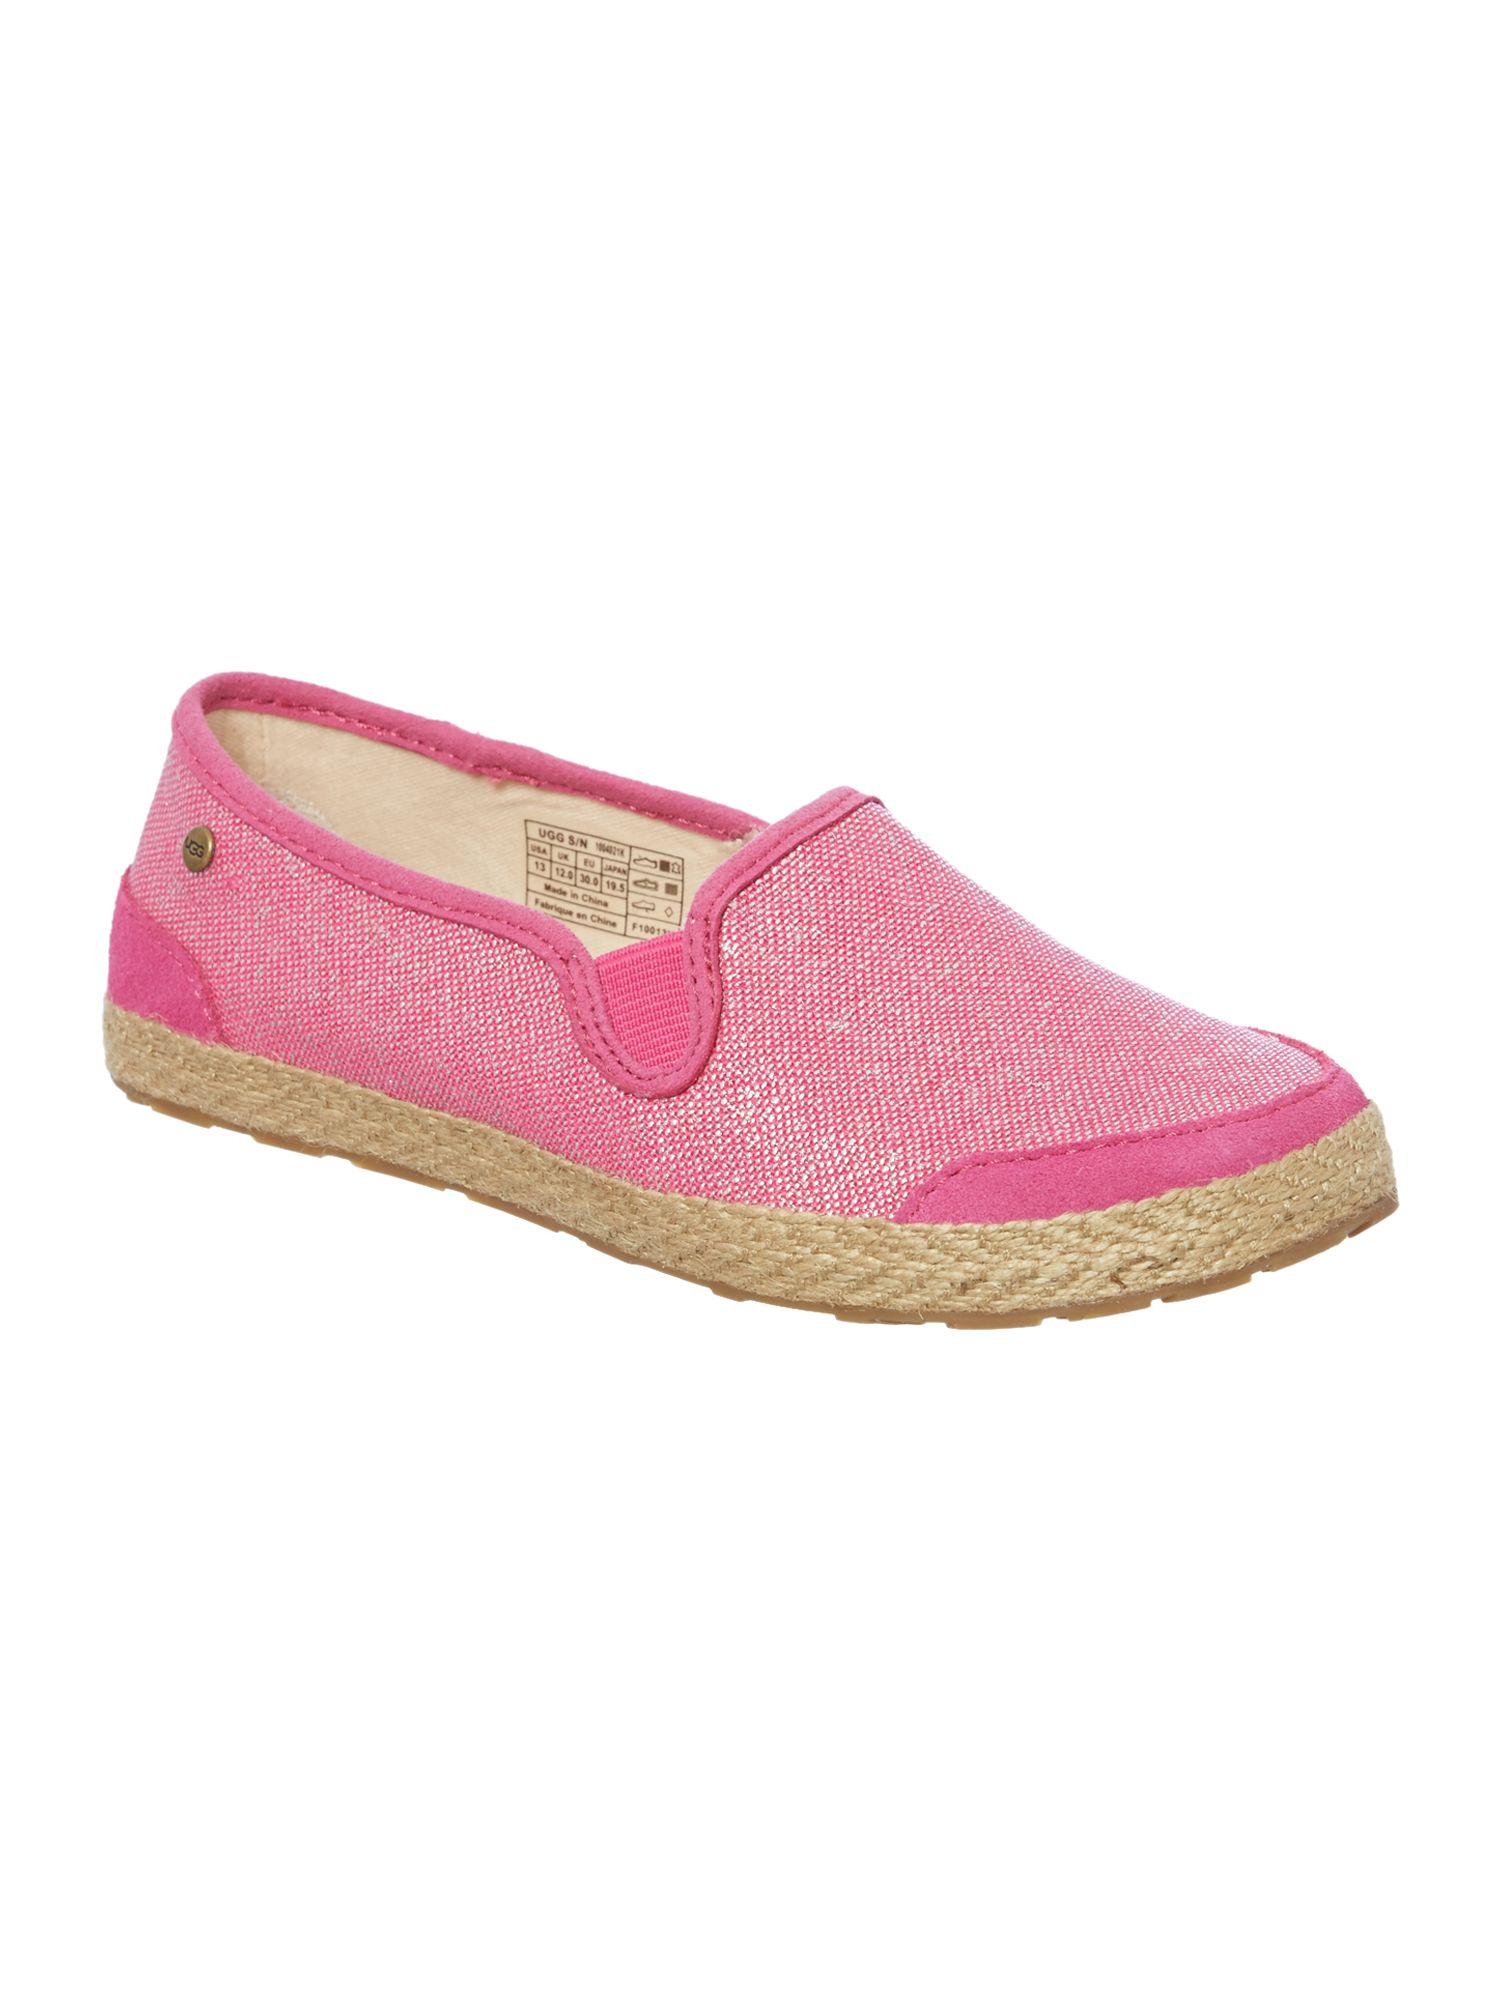 Girls metallic plimsole